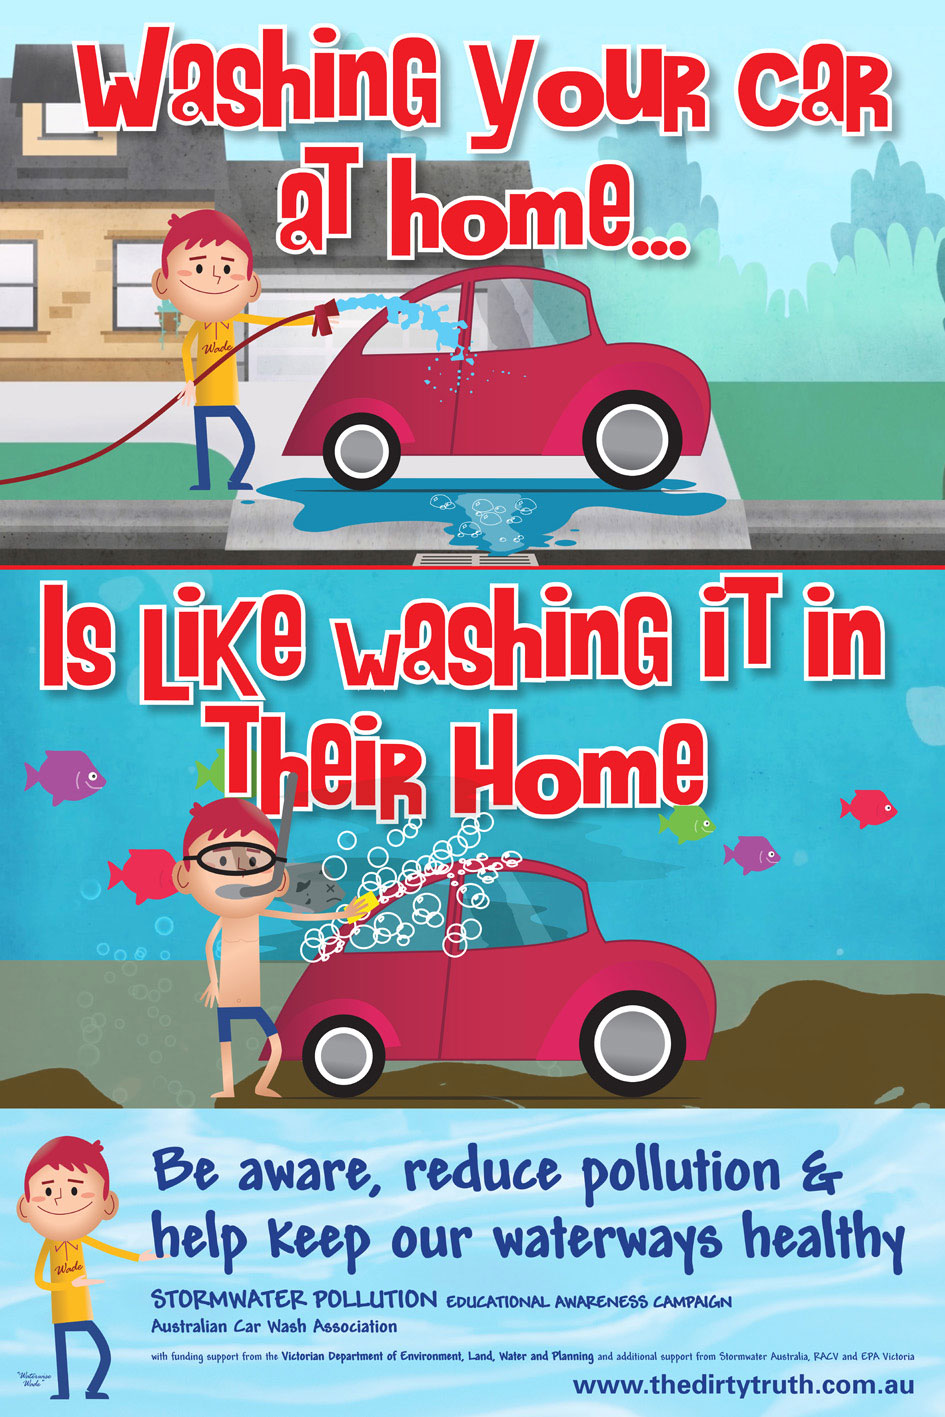 Washing your car promotional poster.